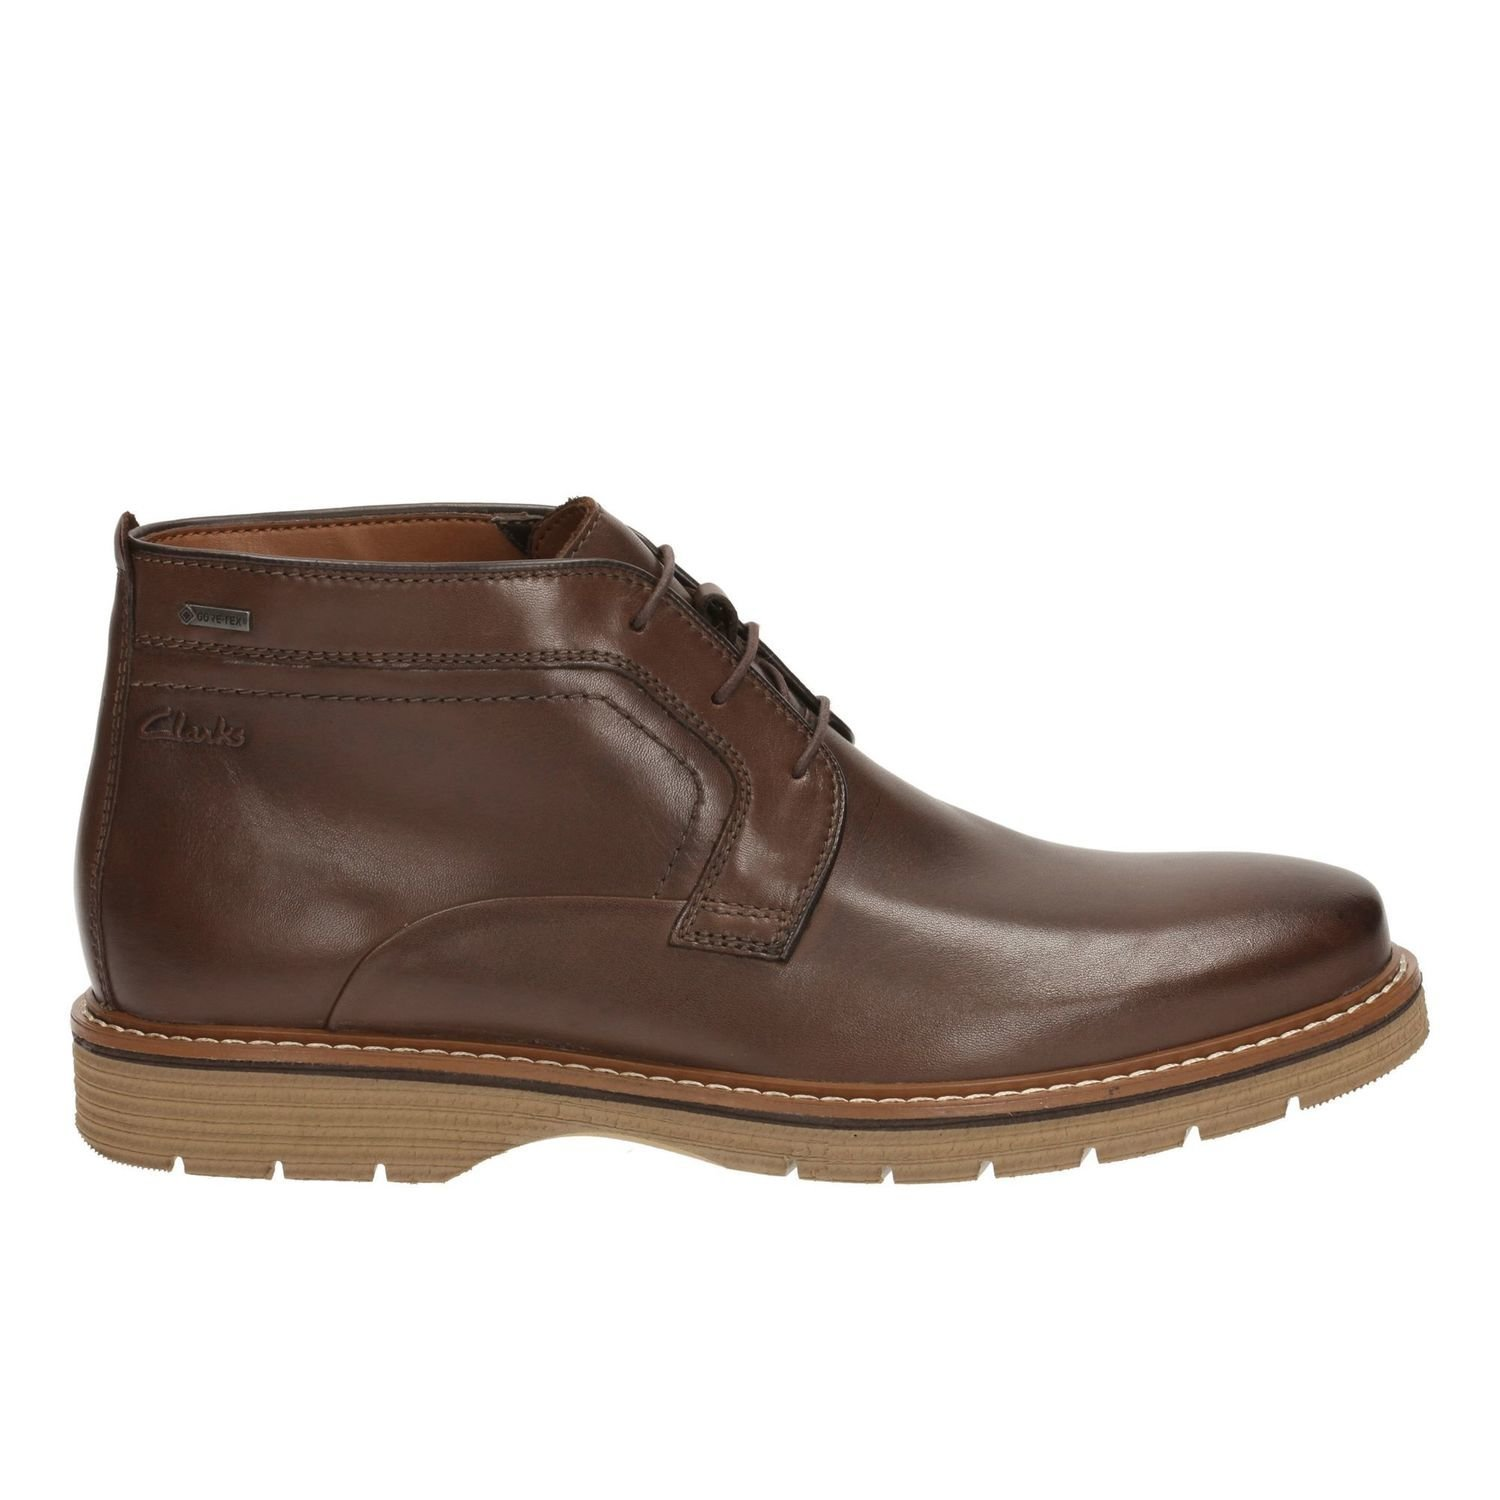 Botas Newkirk Up GTX Cuero Marron TN-2380539